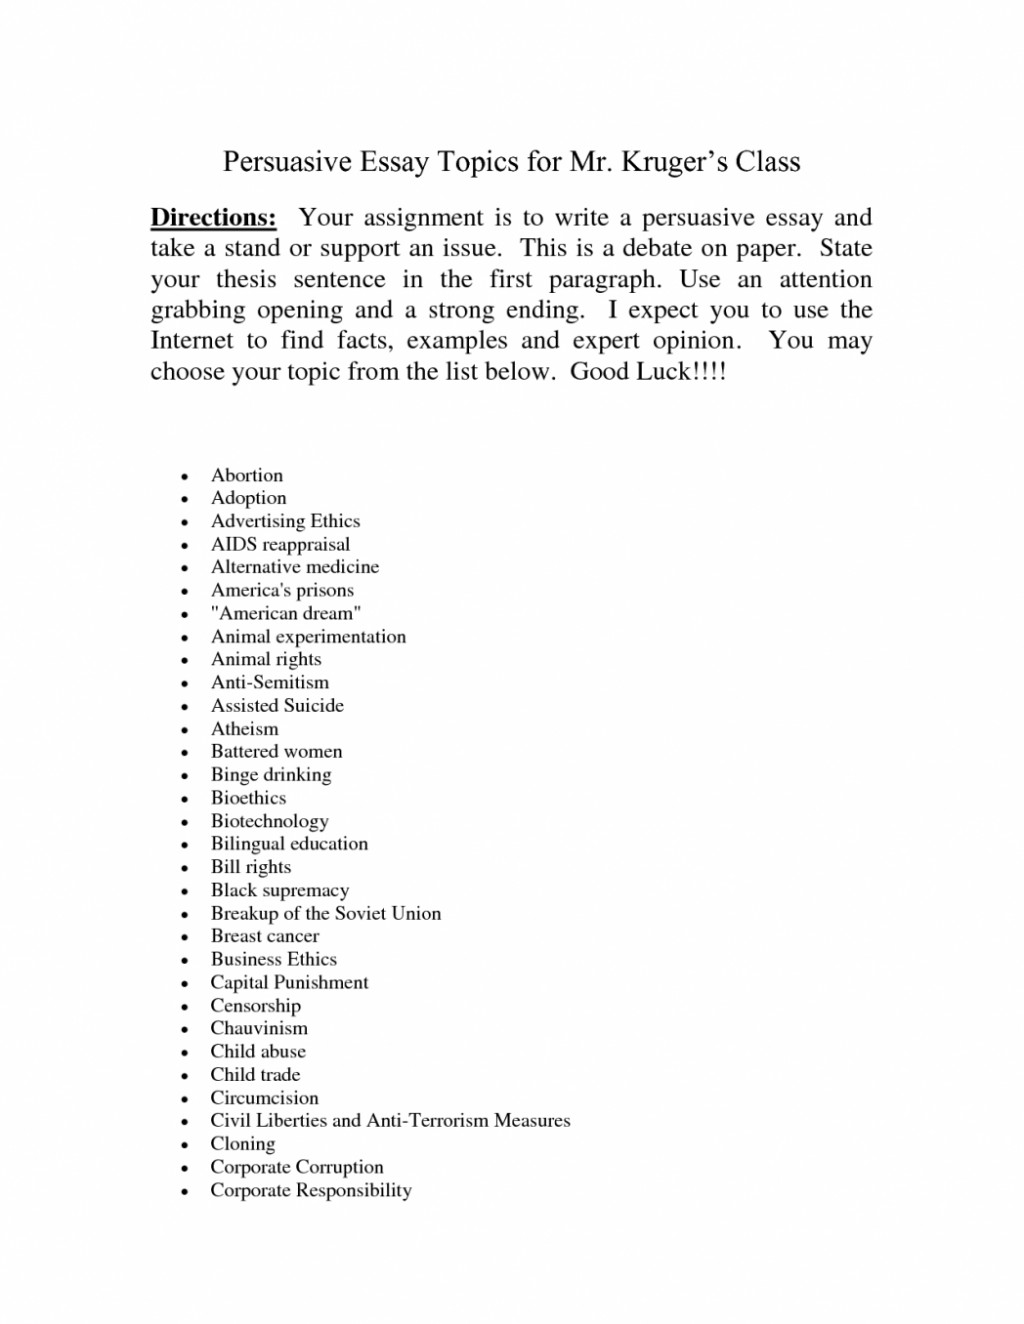 016 Persuasive Essay Topic Ideas Topics Outline Easy For High School Students College Essays Applicati 7th Graders Primary Middle Elementary Uk 1048x1356 Formidable 6th Grade 3rd Large